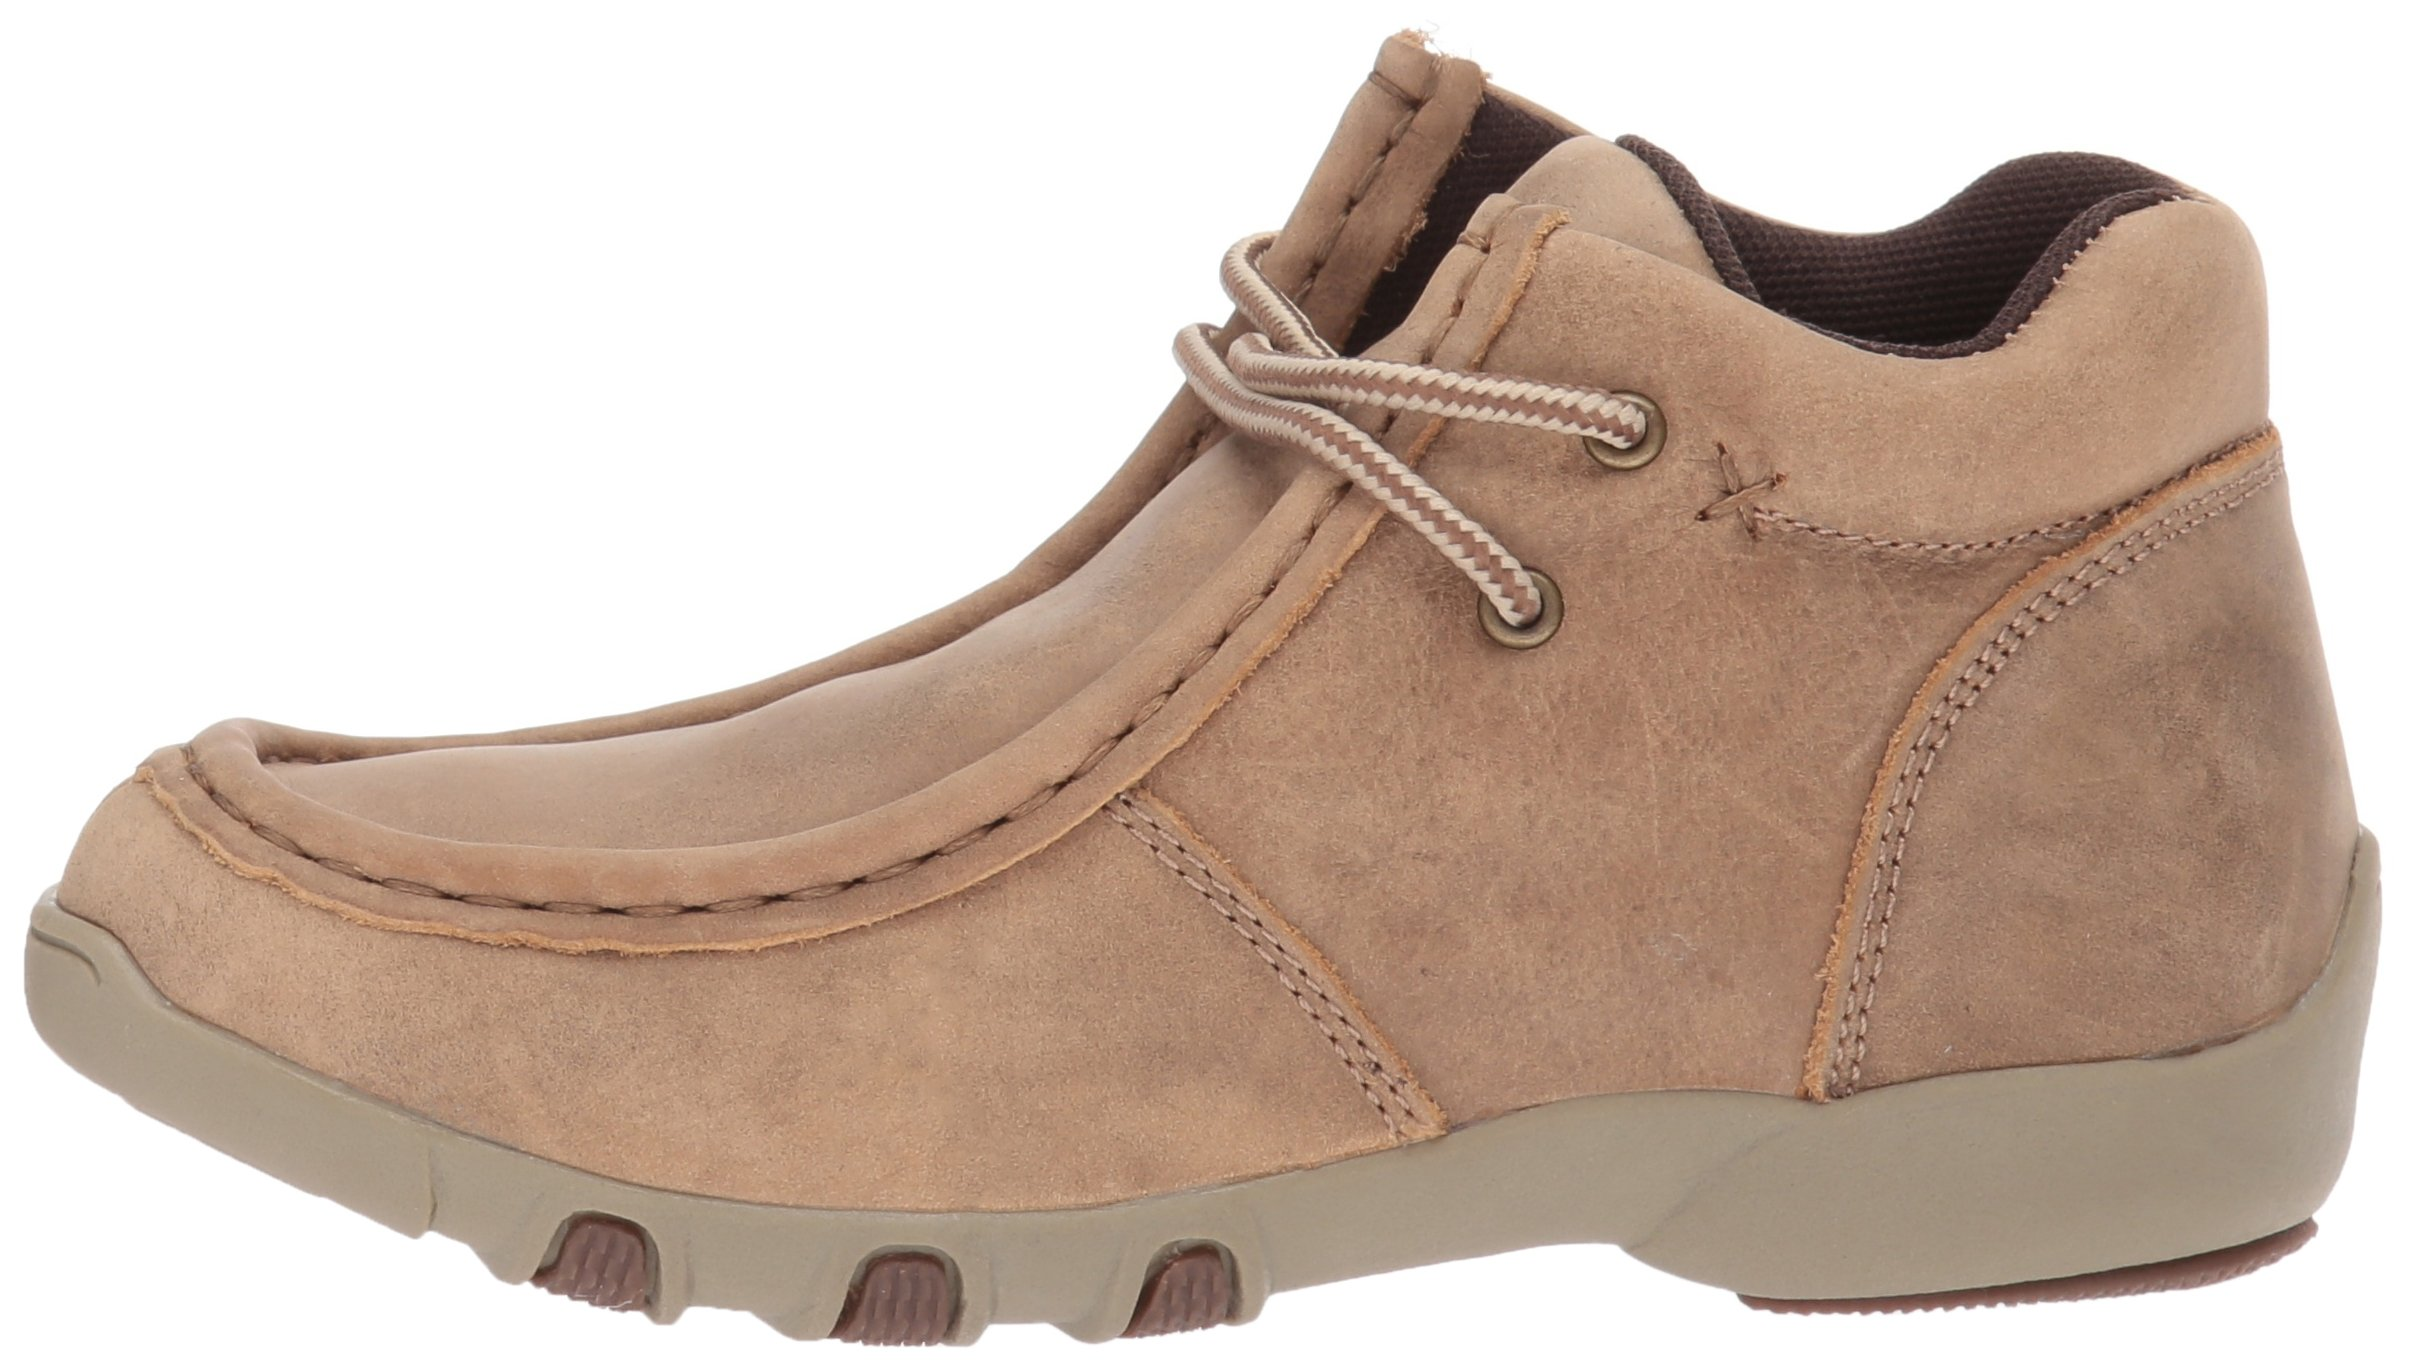 ROPER Boys' Bode, tan 10 M US Little Kid by ROPER (Image #5)